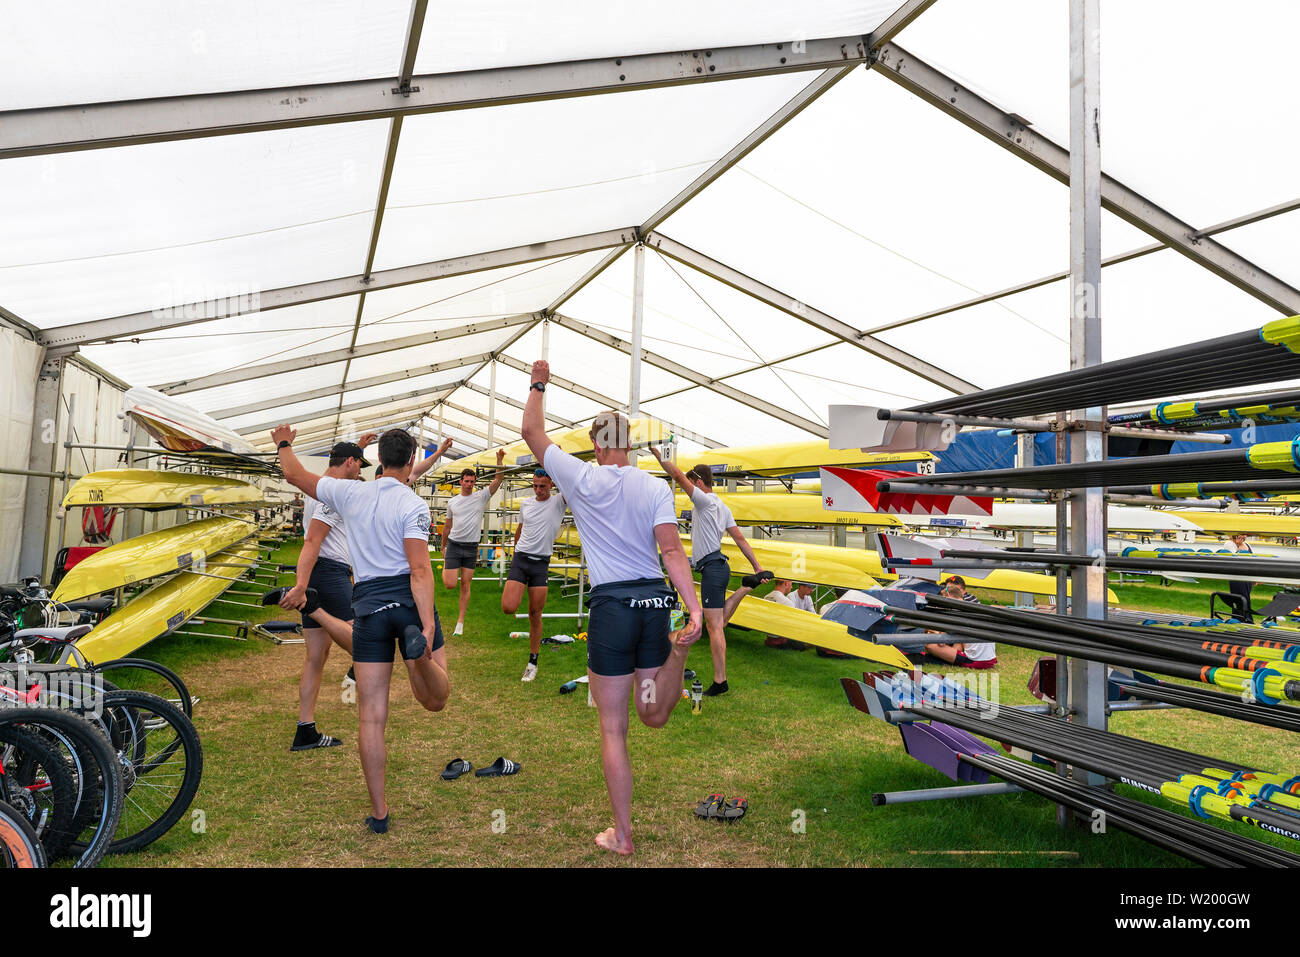 Henley on Thames, Berkshire, UK. 4th July, 2019. Henley Royal Regatta. Upper Thames  Rowing Club team limbering up with stretches in the boat tent before their race in the Thames Challenge Cup. Credit Gary Blake/Alamy Live - Stock Image